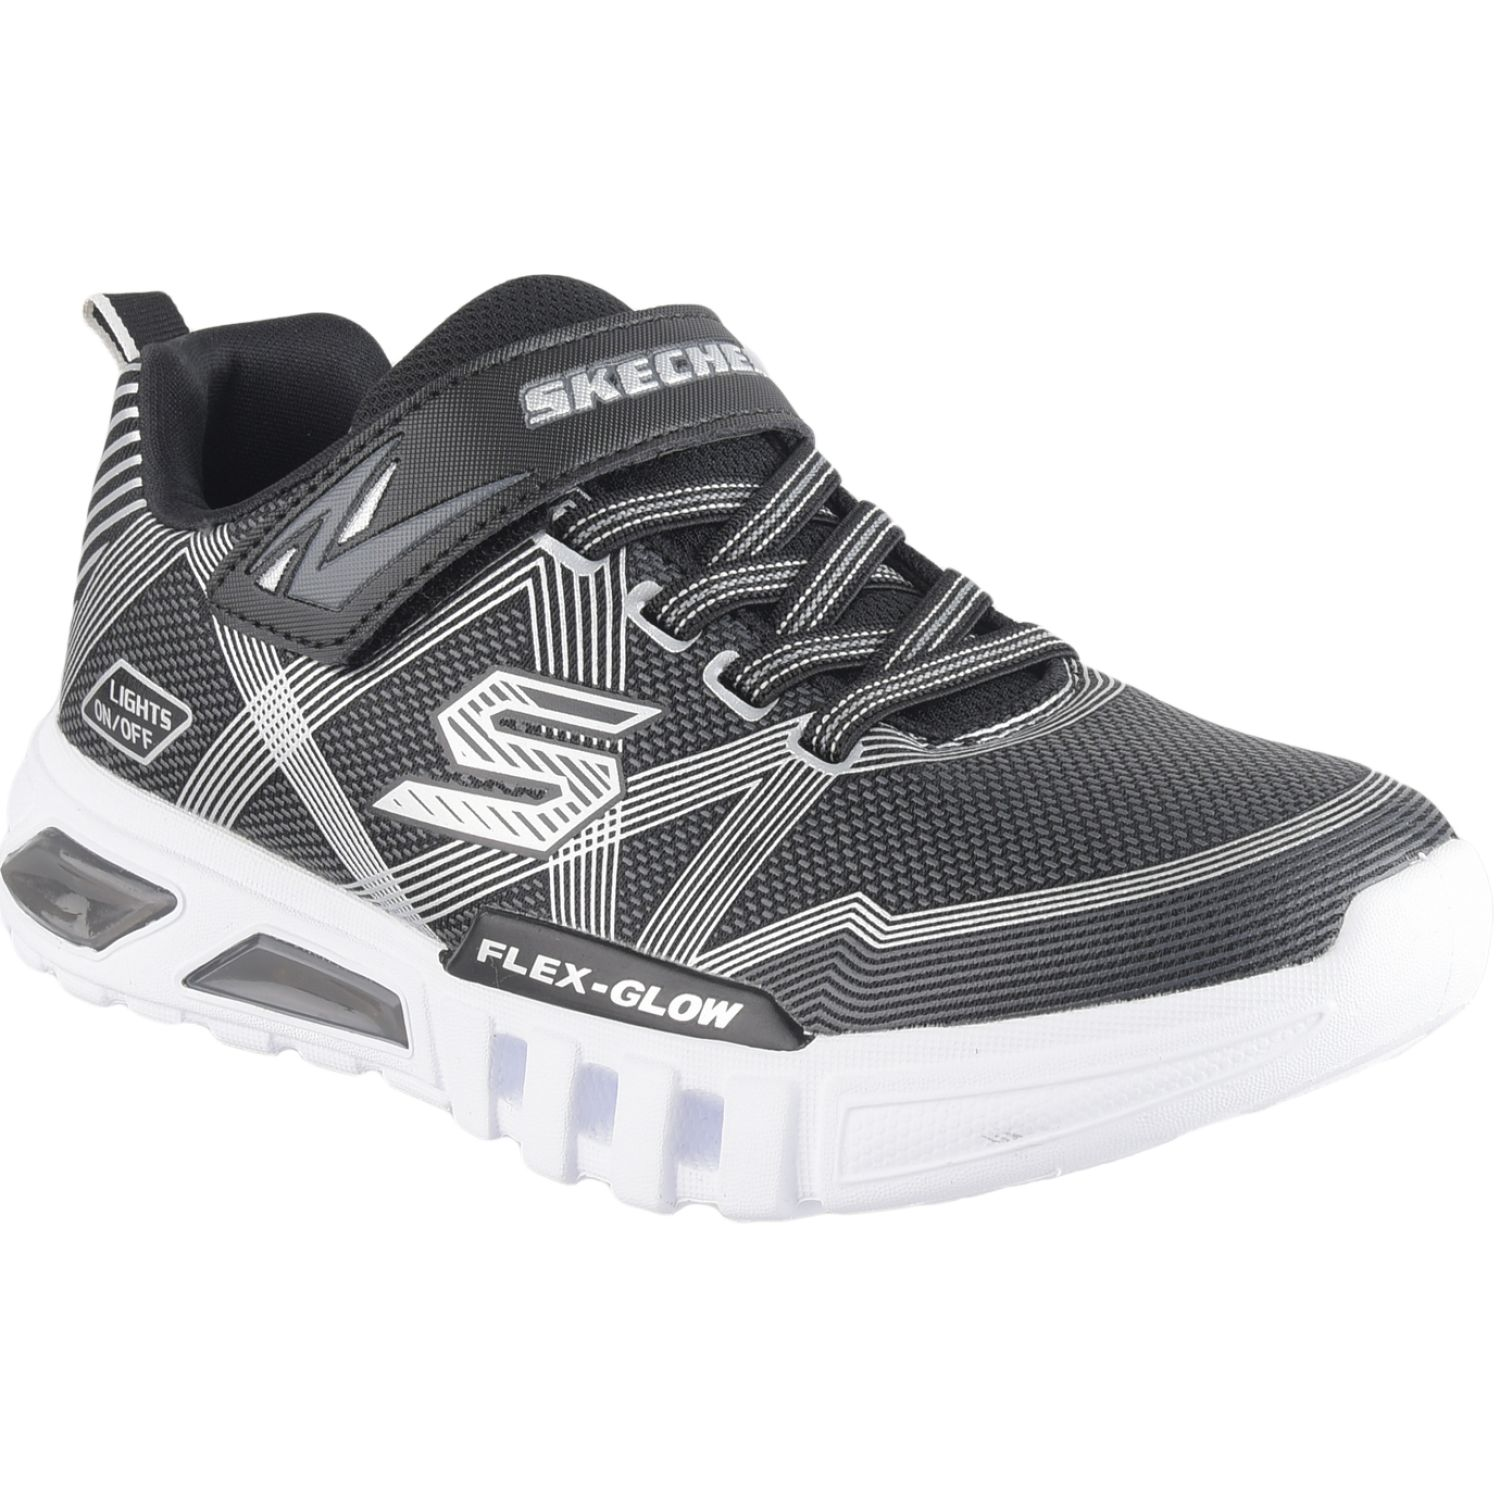 Skechers flex-glow Negro / blanco Walking